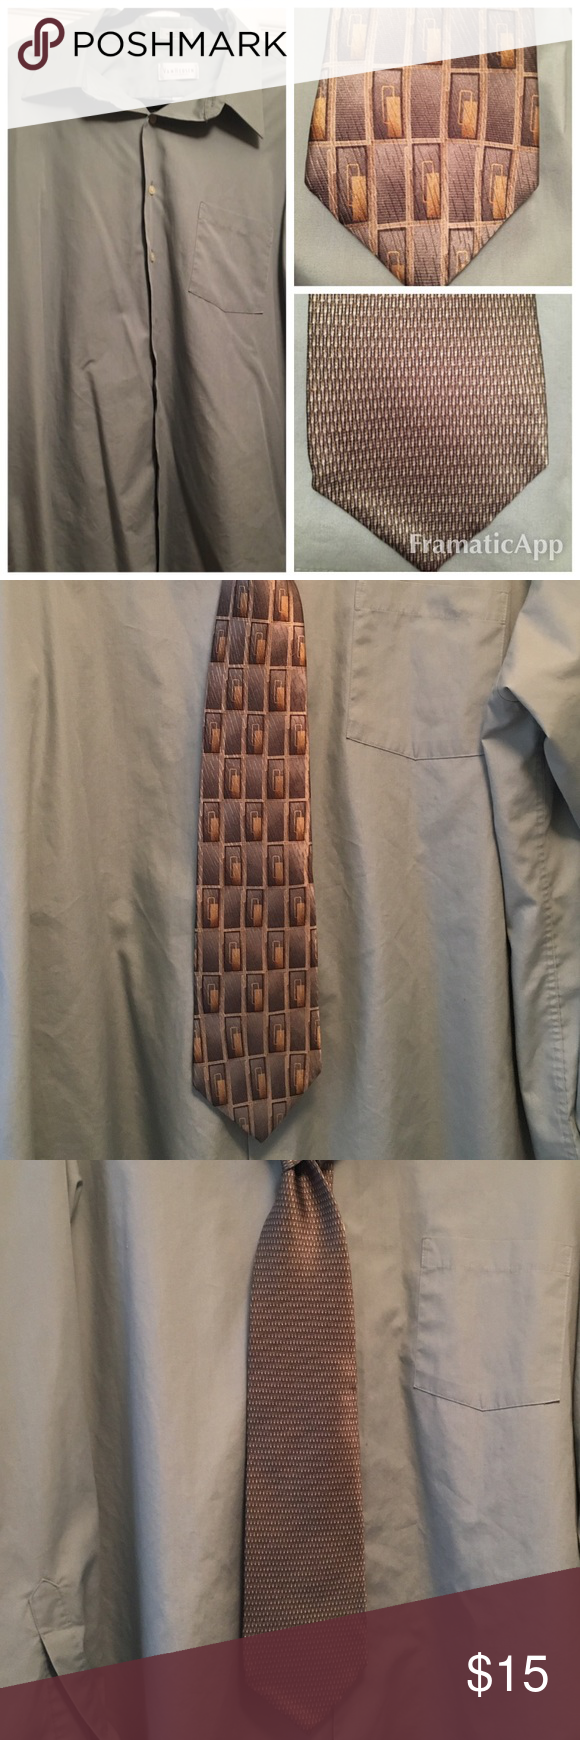 Light green dress shirt with matching ties. Great buy, two looks - one deal. XXL dress shirt (18 34/35) Shirts Dress Shirts